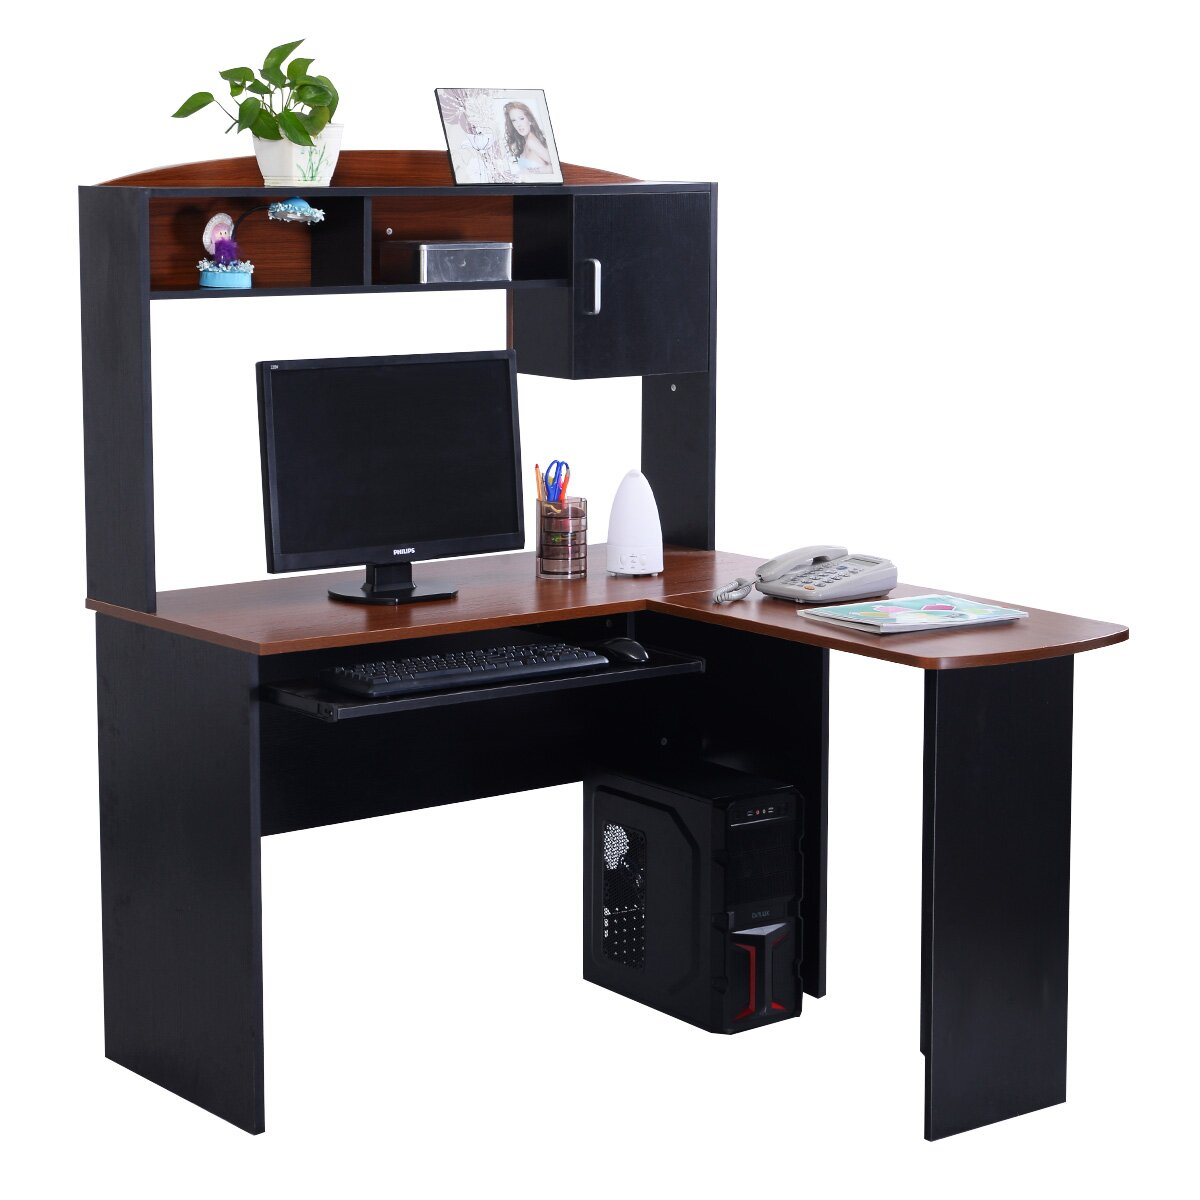 Gymax Home Office L-Shaped Corner Computer Desk